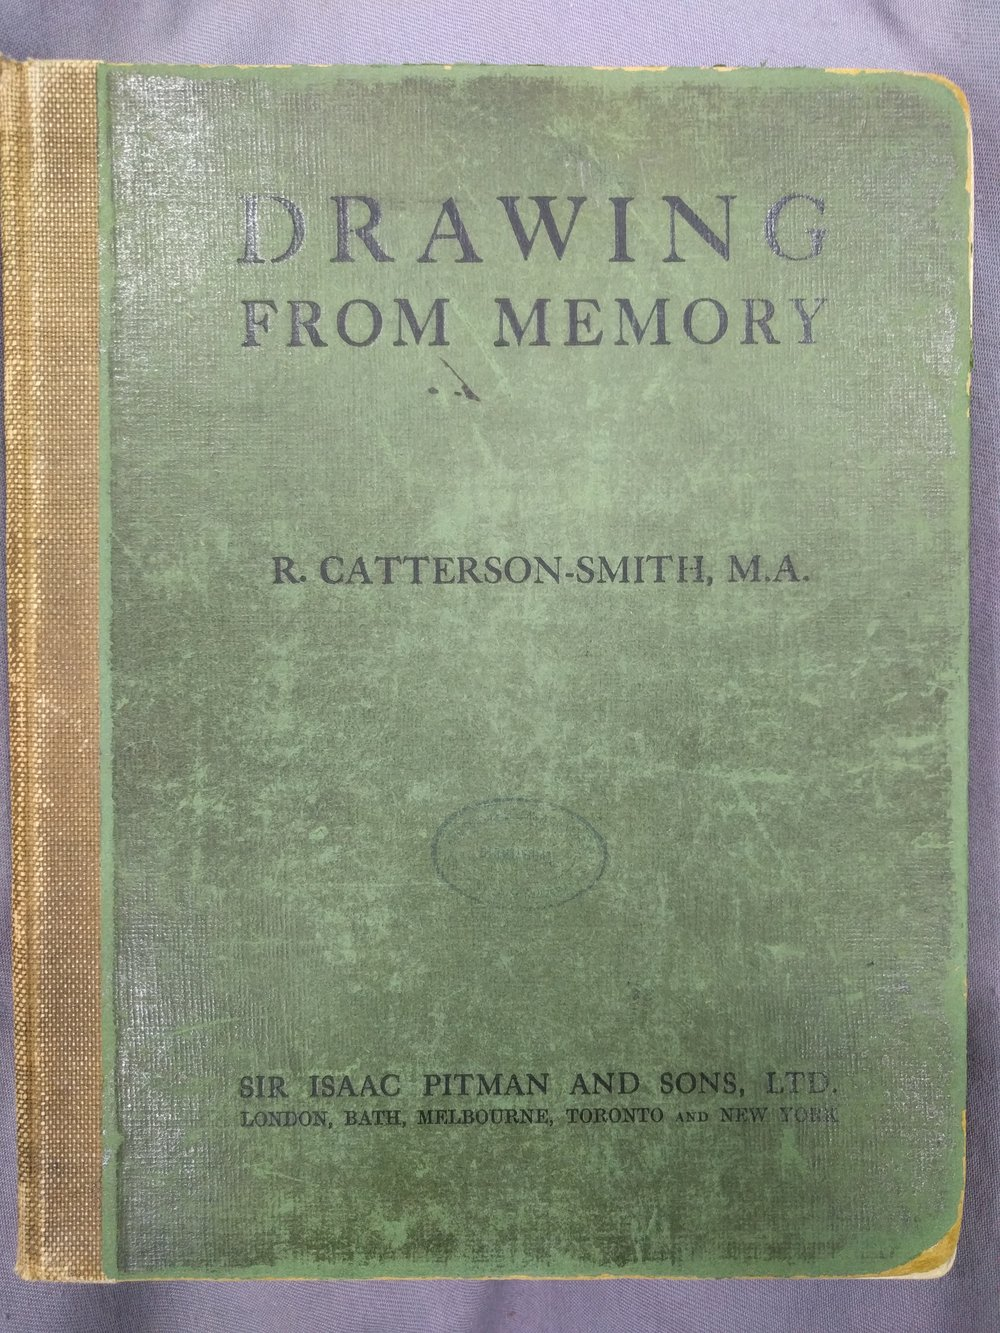 Robert Catterson-Smith,  Drawing from Memory , Isaac Pitman and Sons: London, Bath, Melbourne, Toronto and New York 1921.